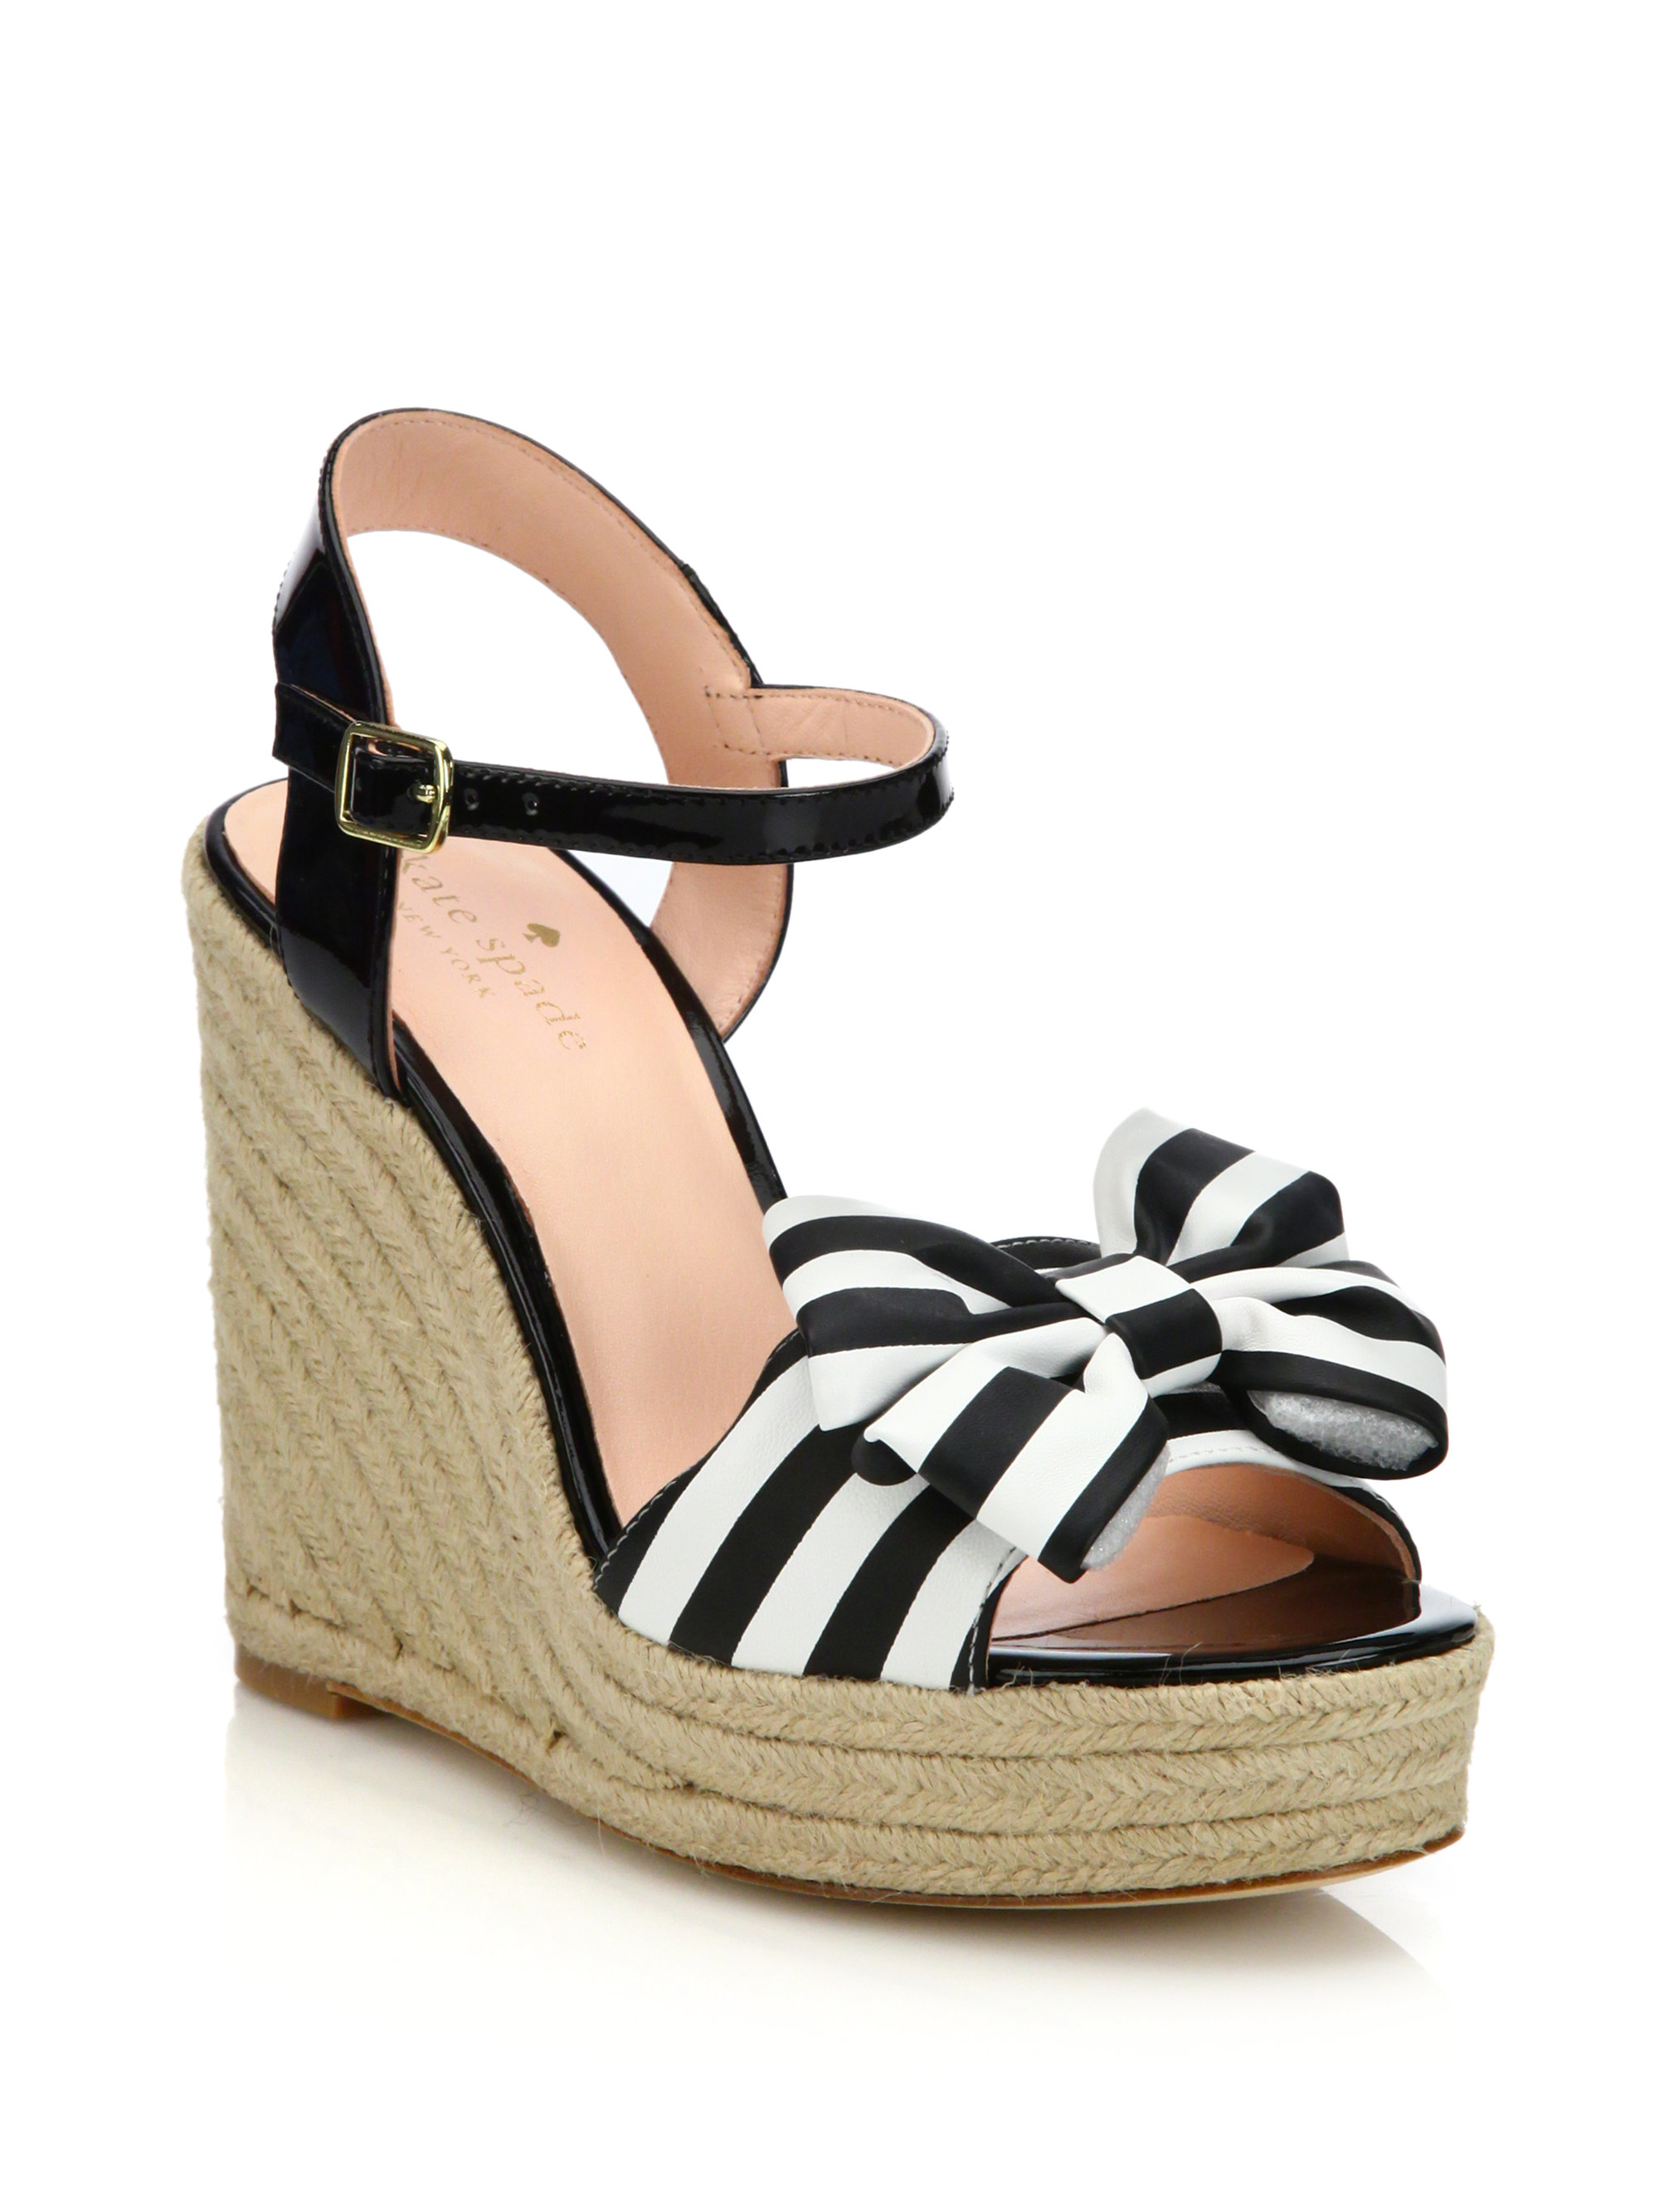 Kate Spade New York Satin Wedge Sandals free shipping nicekicks TTupdd